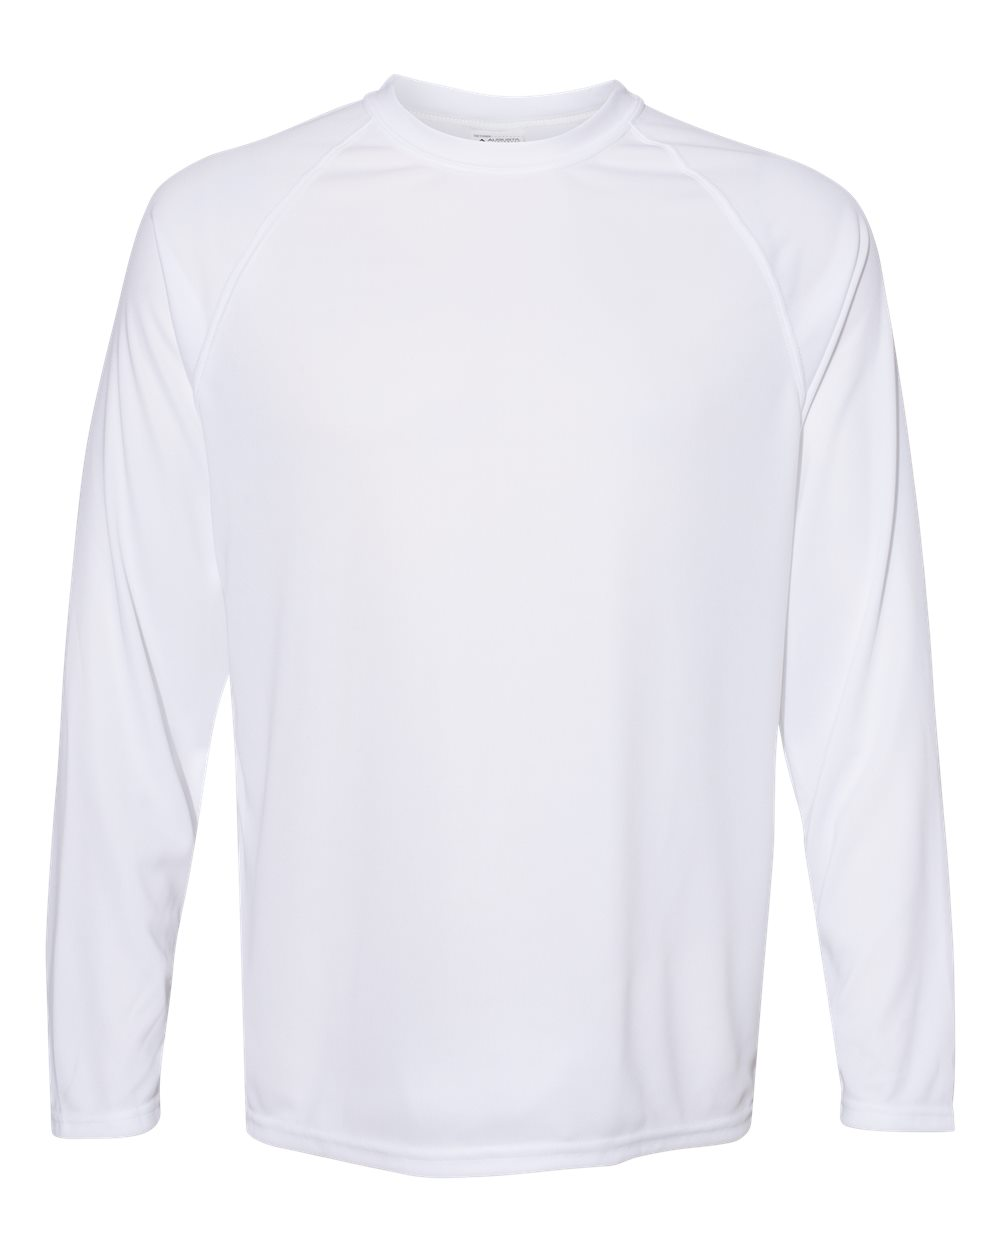 Attain True Hue Performance Long Sleeve T-Shirt-Augusta Sportswear